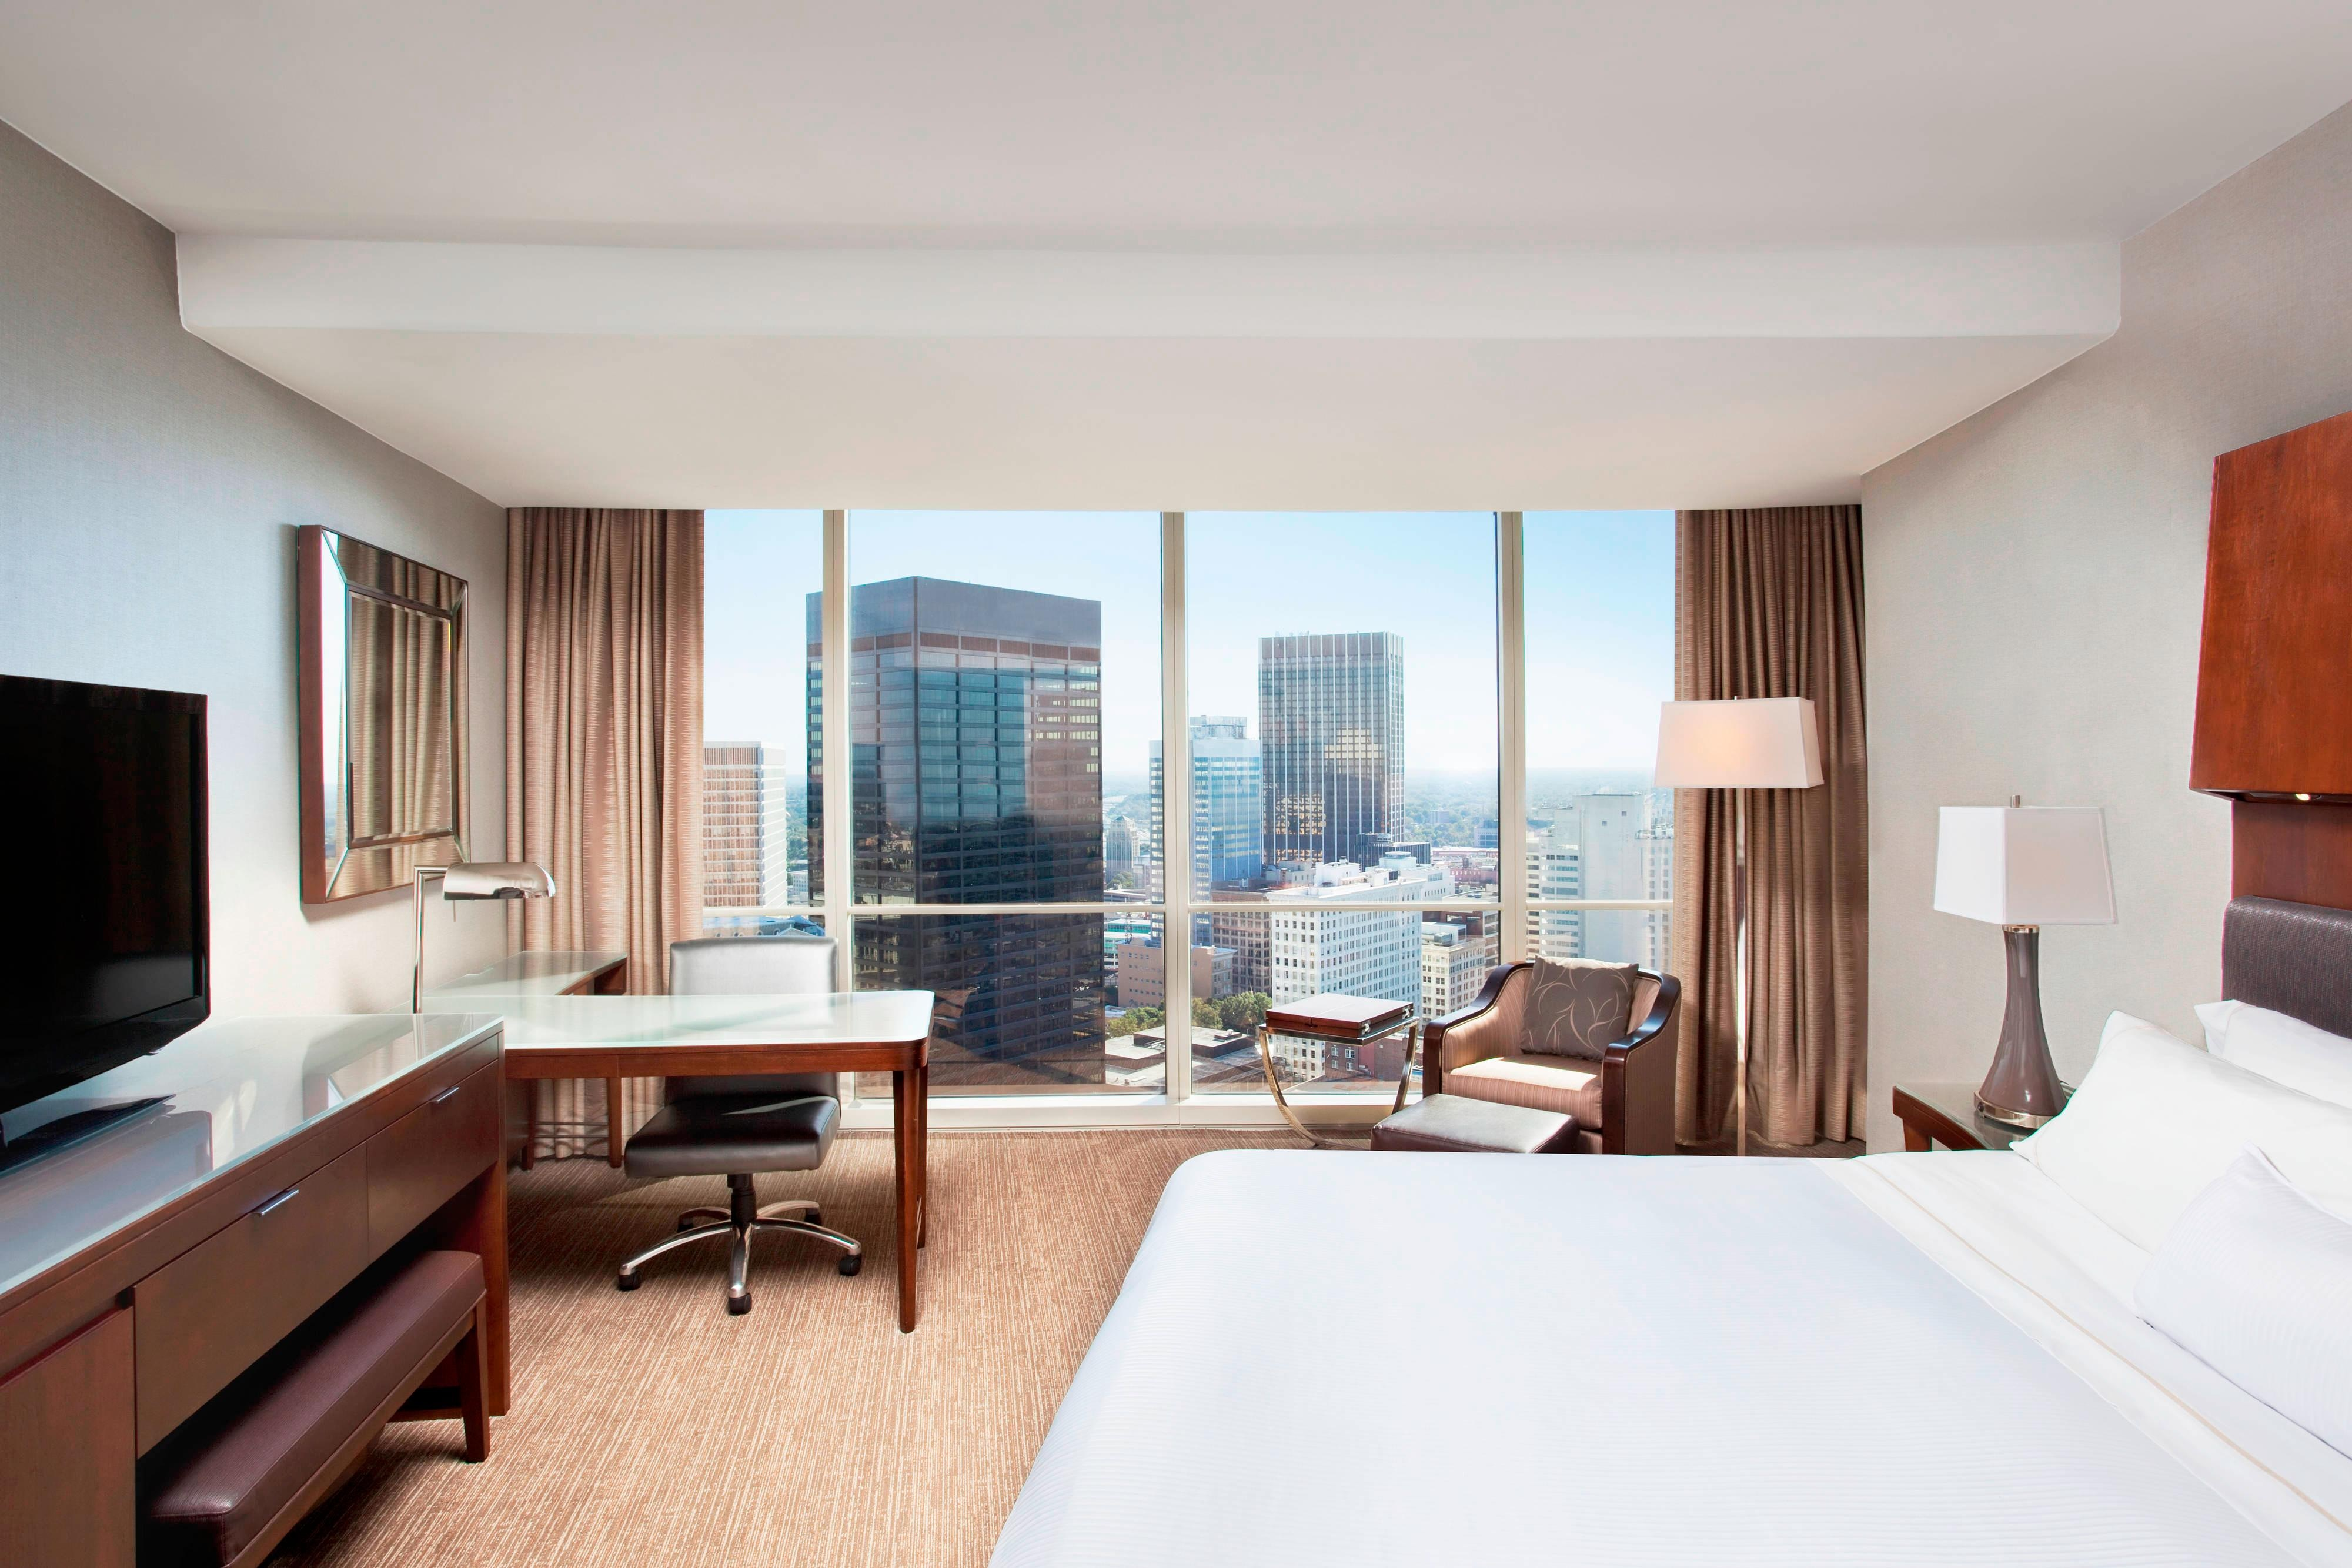 Deluxe King Room City View